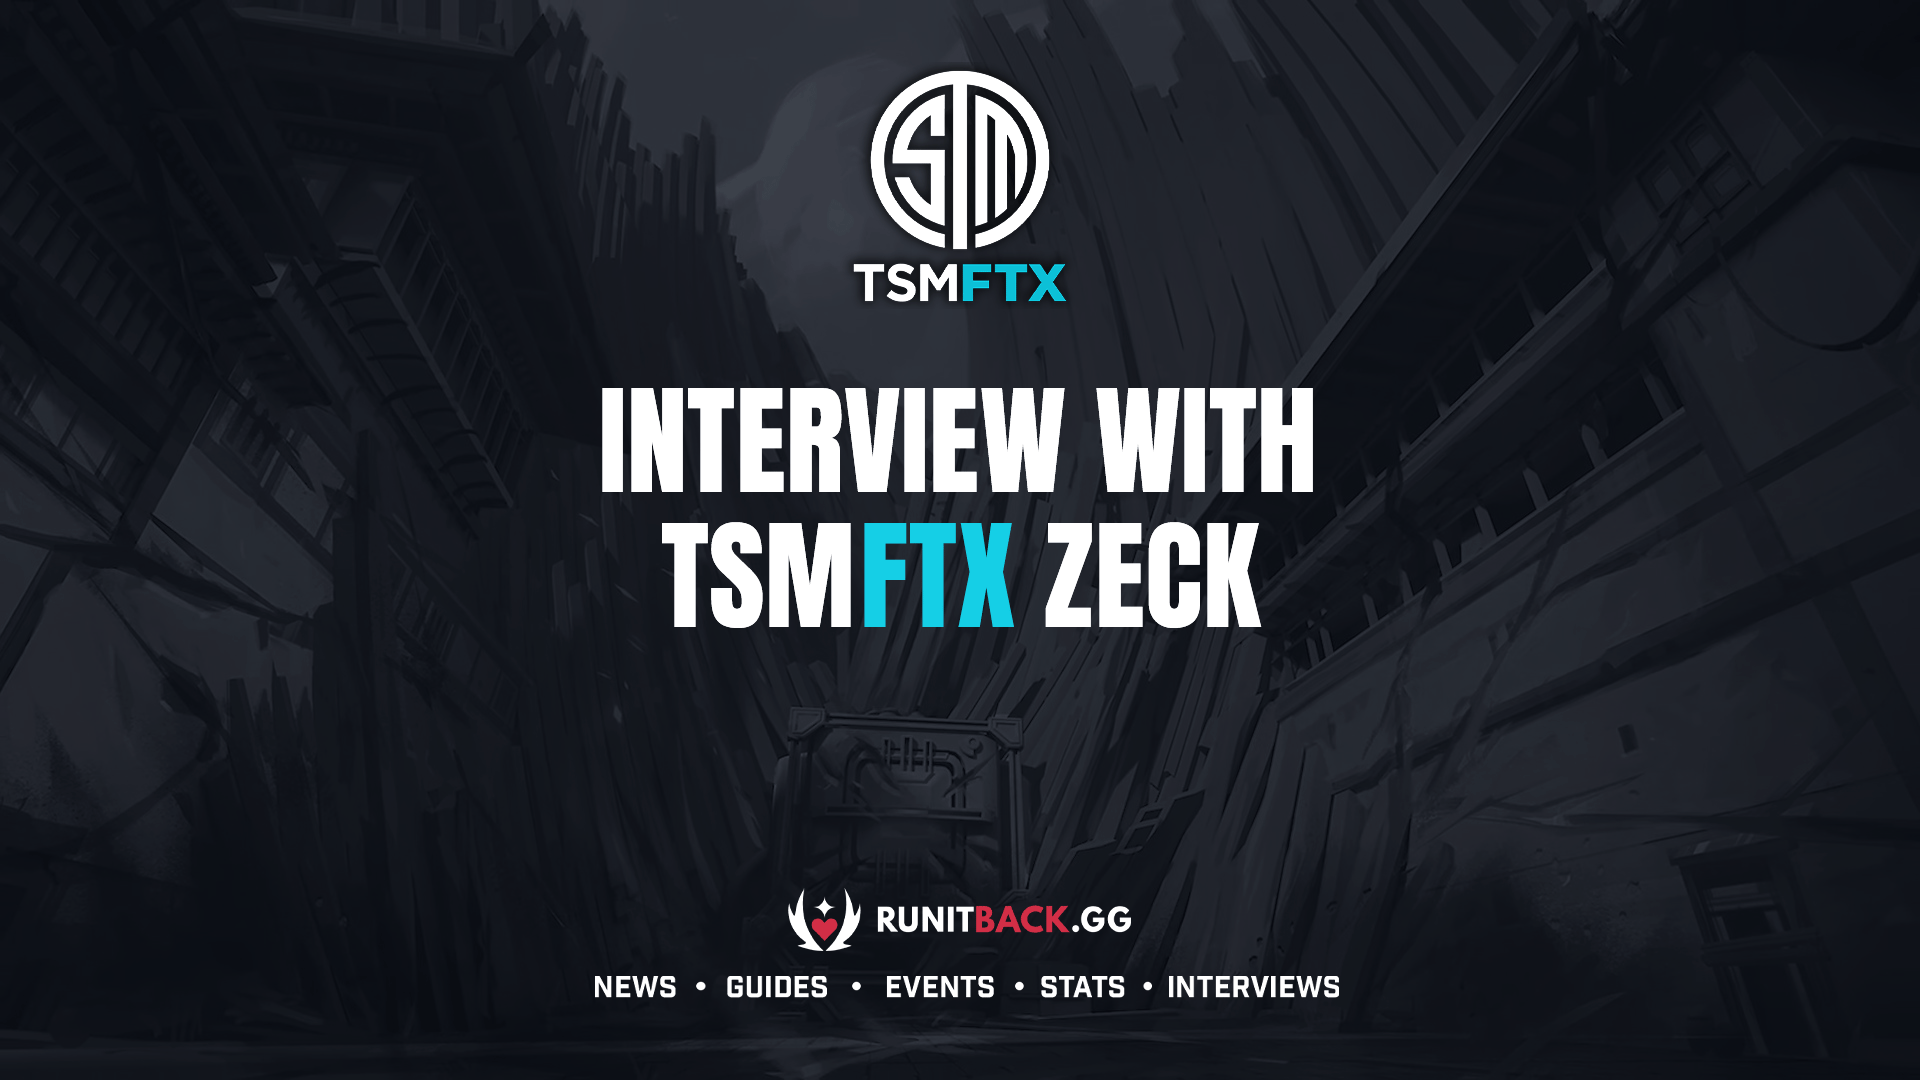 """TSM FTX zecK: """"My goal for the team is for them to develop into the best players and people they can possibly be"""""""